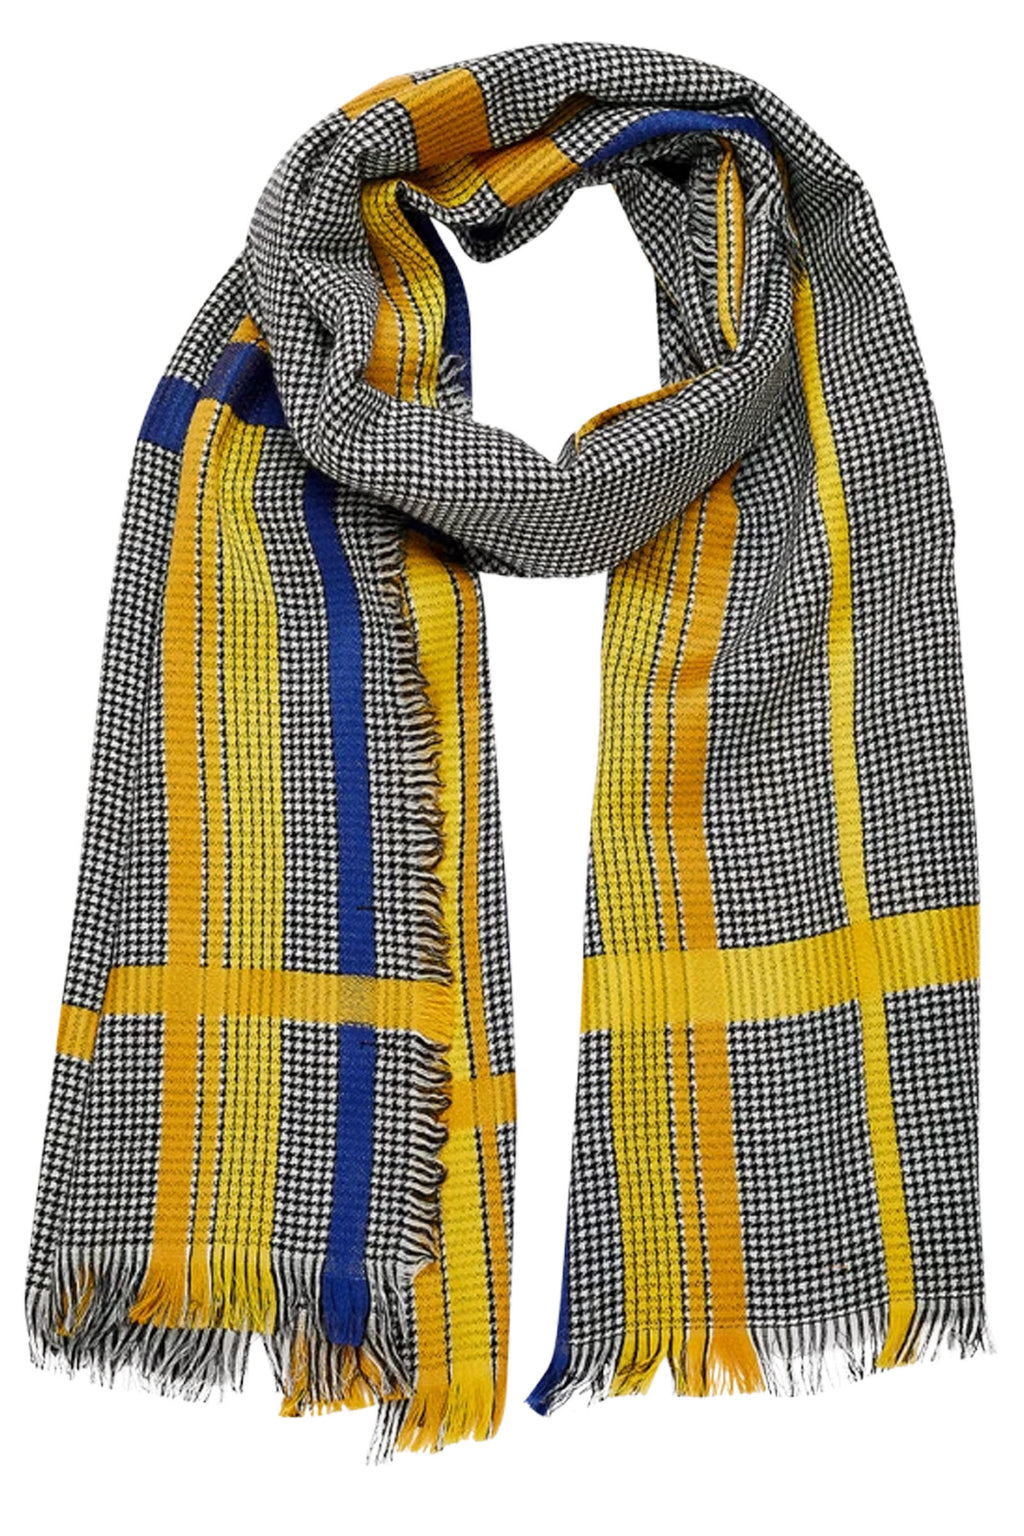 Inouitoosh Nicollo Yellow, Navy & Black Plaid Wrap